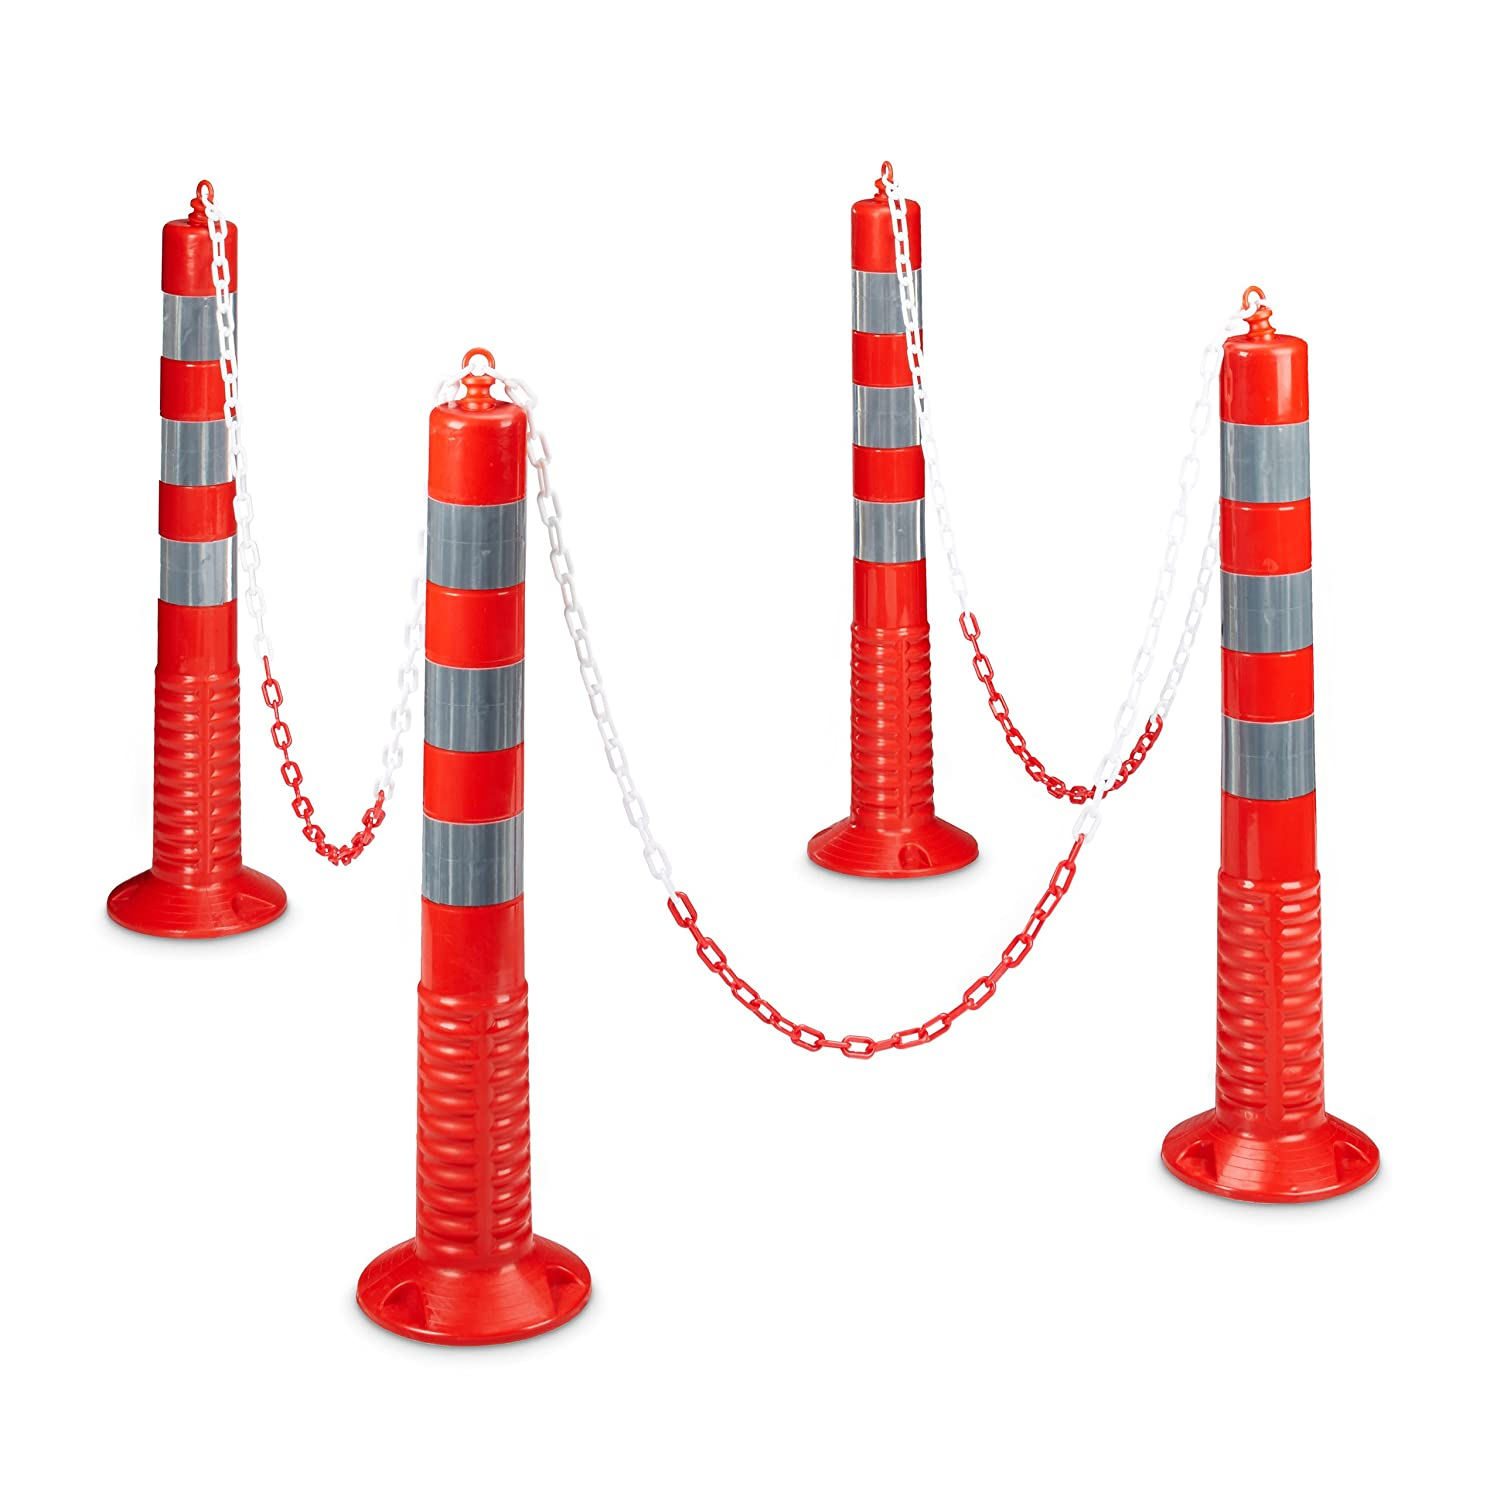 Relaxdays 4 Flexible Parking Posts, Size: 75 x 22 x 22 cm Reflective Chain Posts w/Practical Chain Barriers as Parking Space Savers with Sturdy Base to Secure w/Screws, Red/Gray Relaxdays GmbH 10020485_305